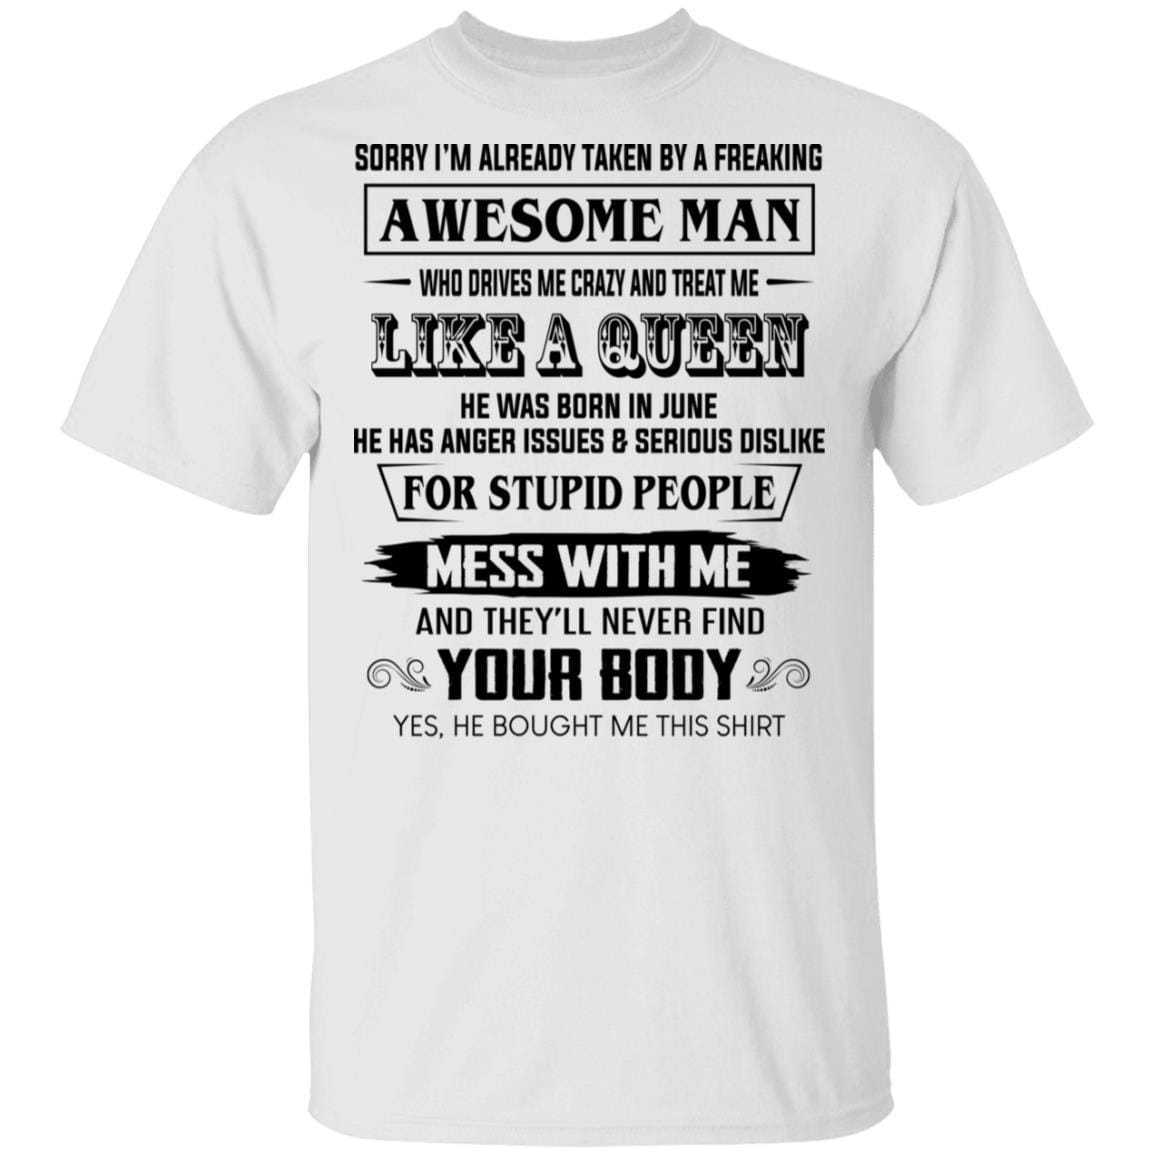 I'm Already Taken By A Freaking Awesome Man Who Drives Me Crazy And Born In June T-Shirts, Hoodies 1049-9974-86602250-48300 - Tee Ript